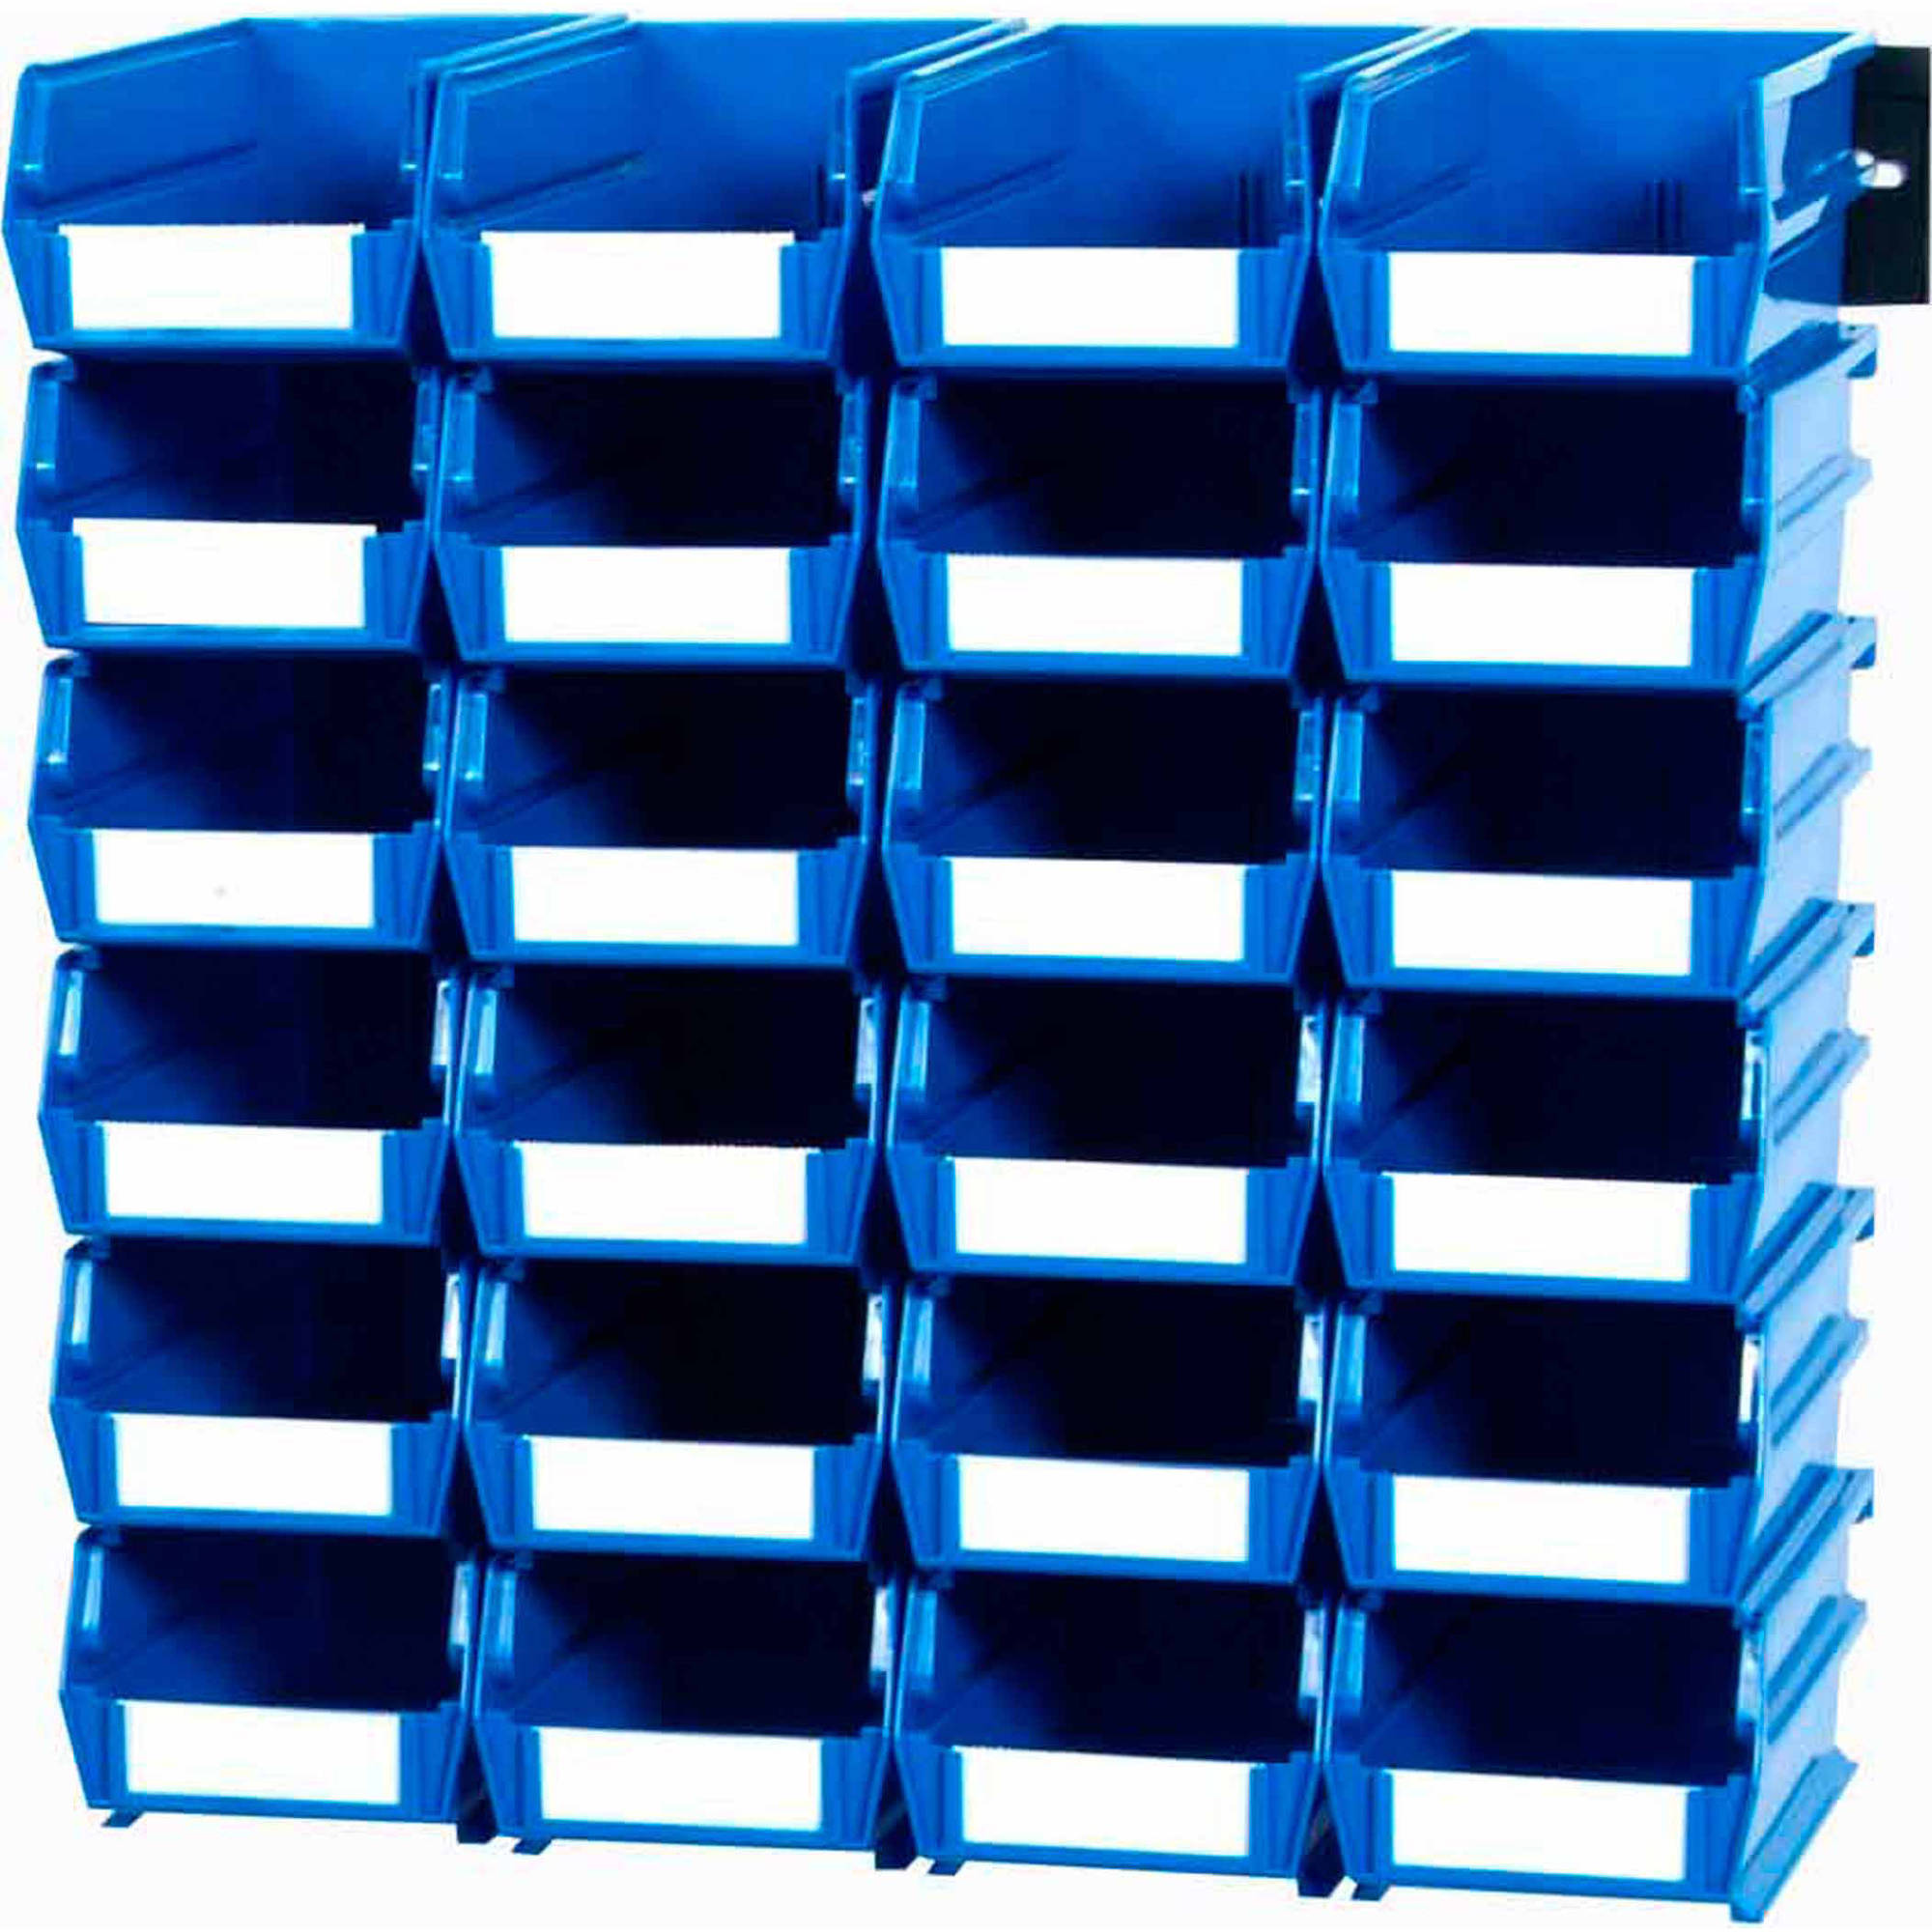 "LocBin 26-Piece Wall Storage Unit with 5-3/8""L x 4-1/8""W x 3""H Interlocking Poly Bins, 24ct, Wall Mount Rails 8-3/4""L with Hardware, 2pk"